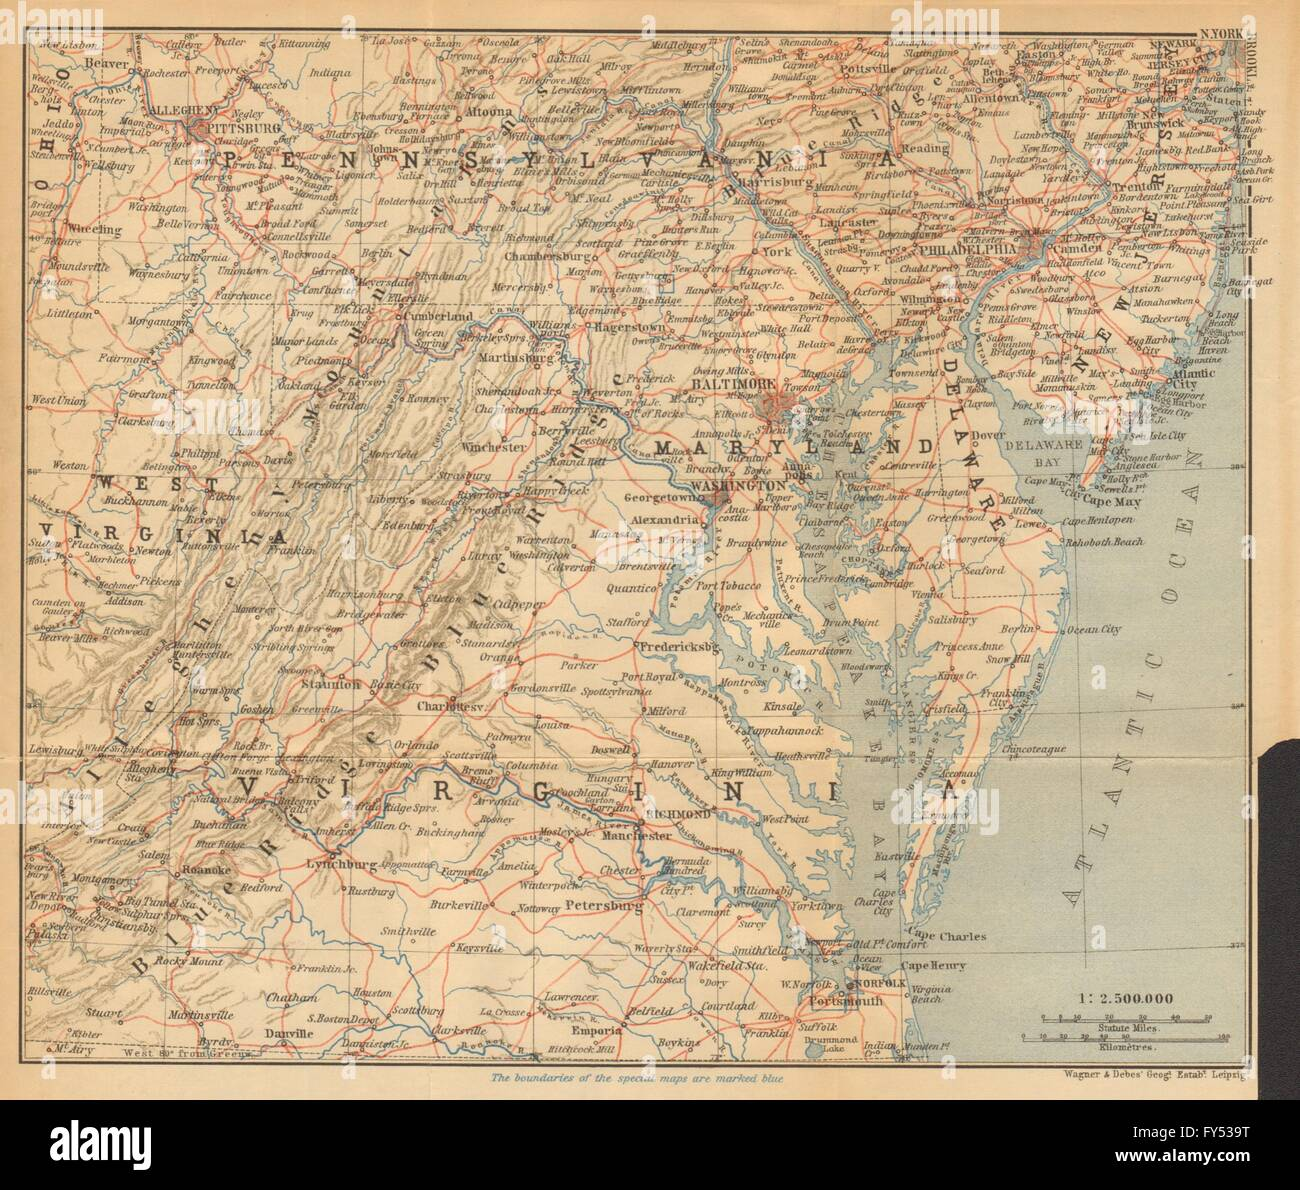 USA ATLANTIC STATES RAILWAY MAP Appalachia Baltimore - Baltimore usa map